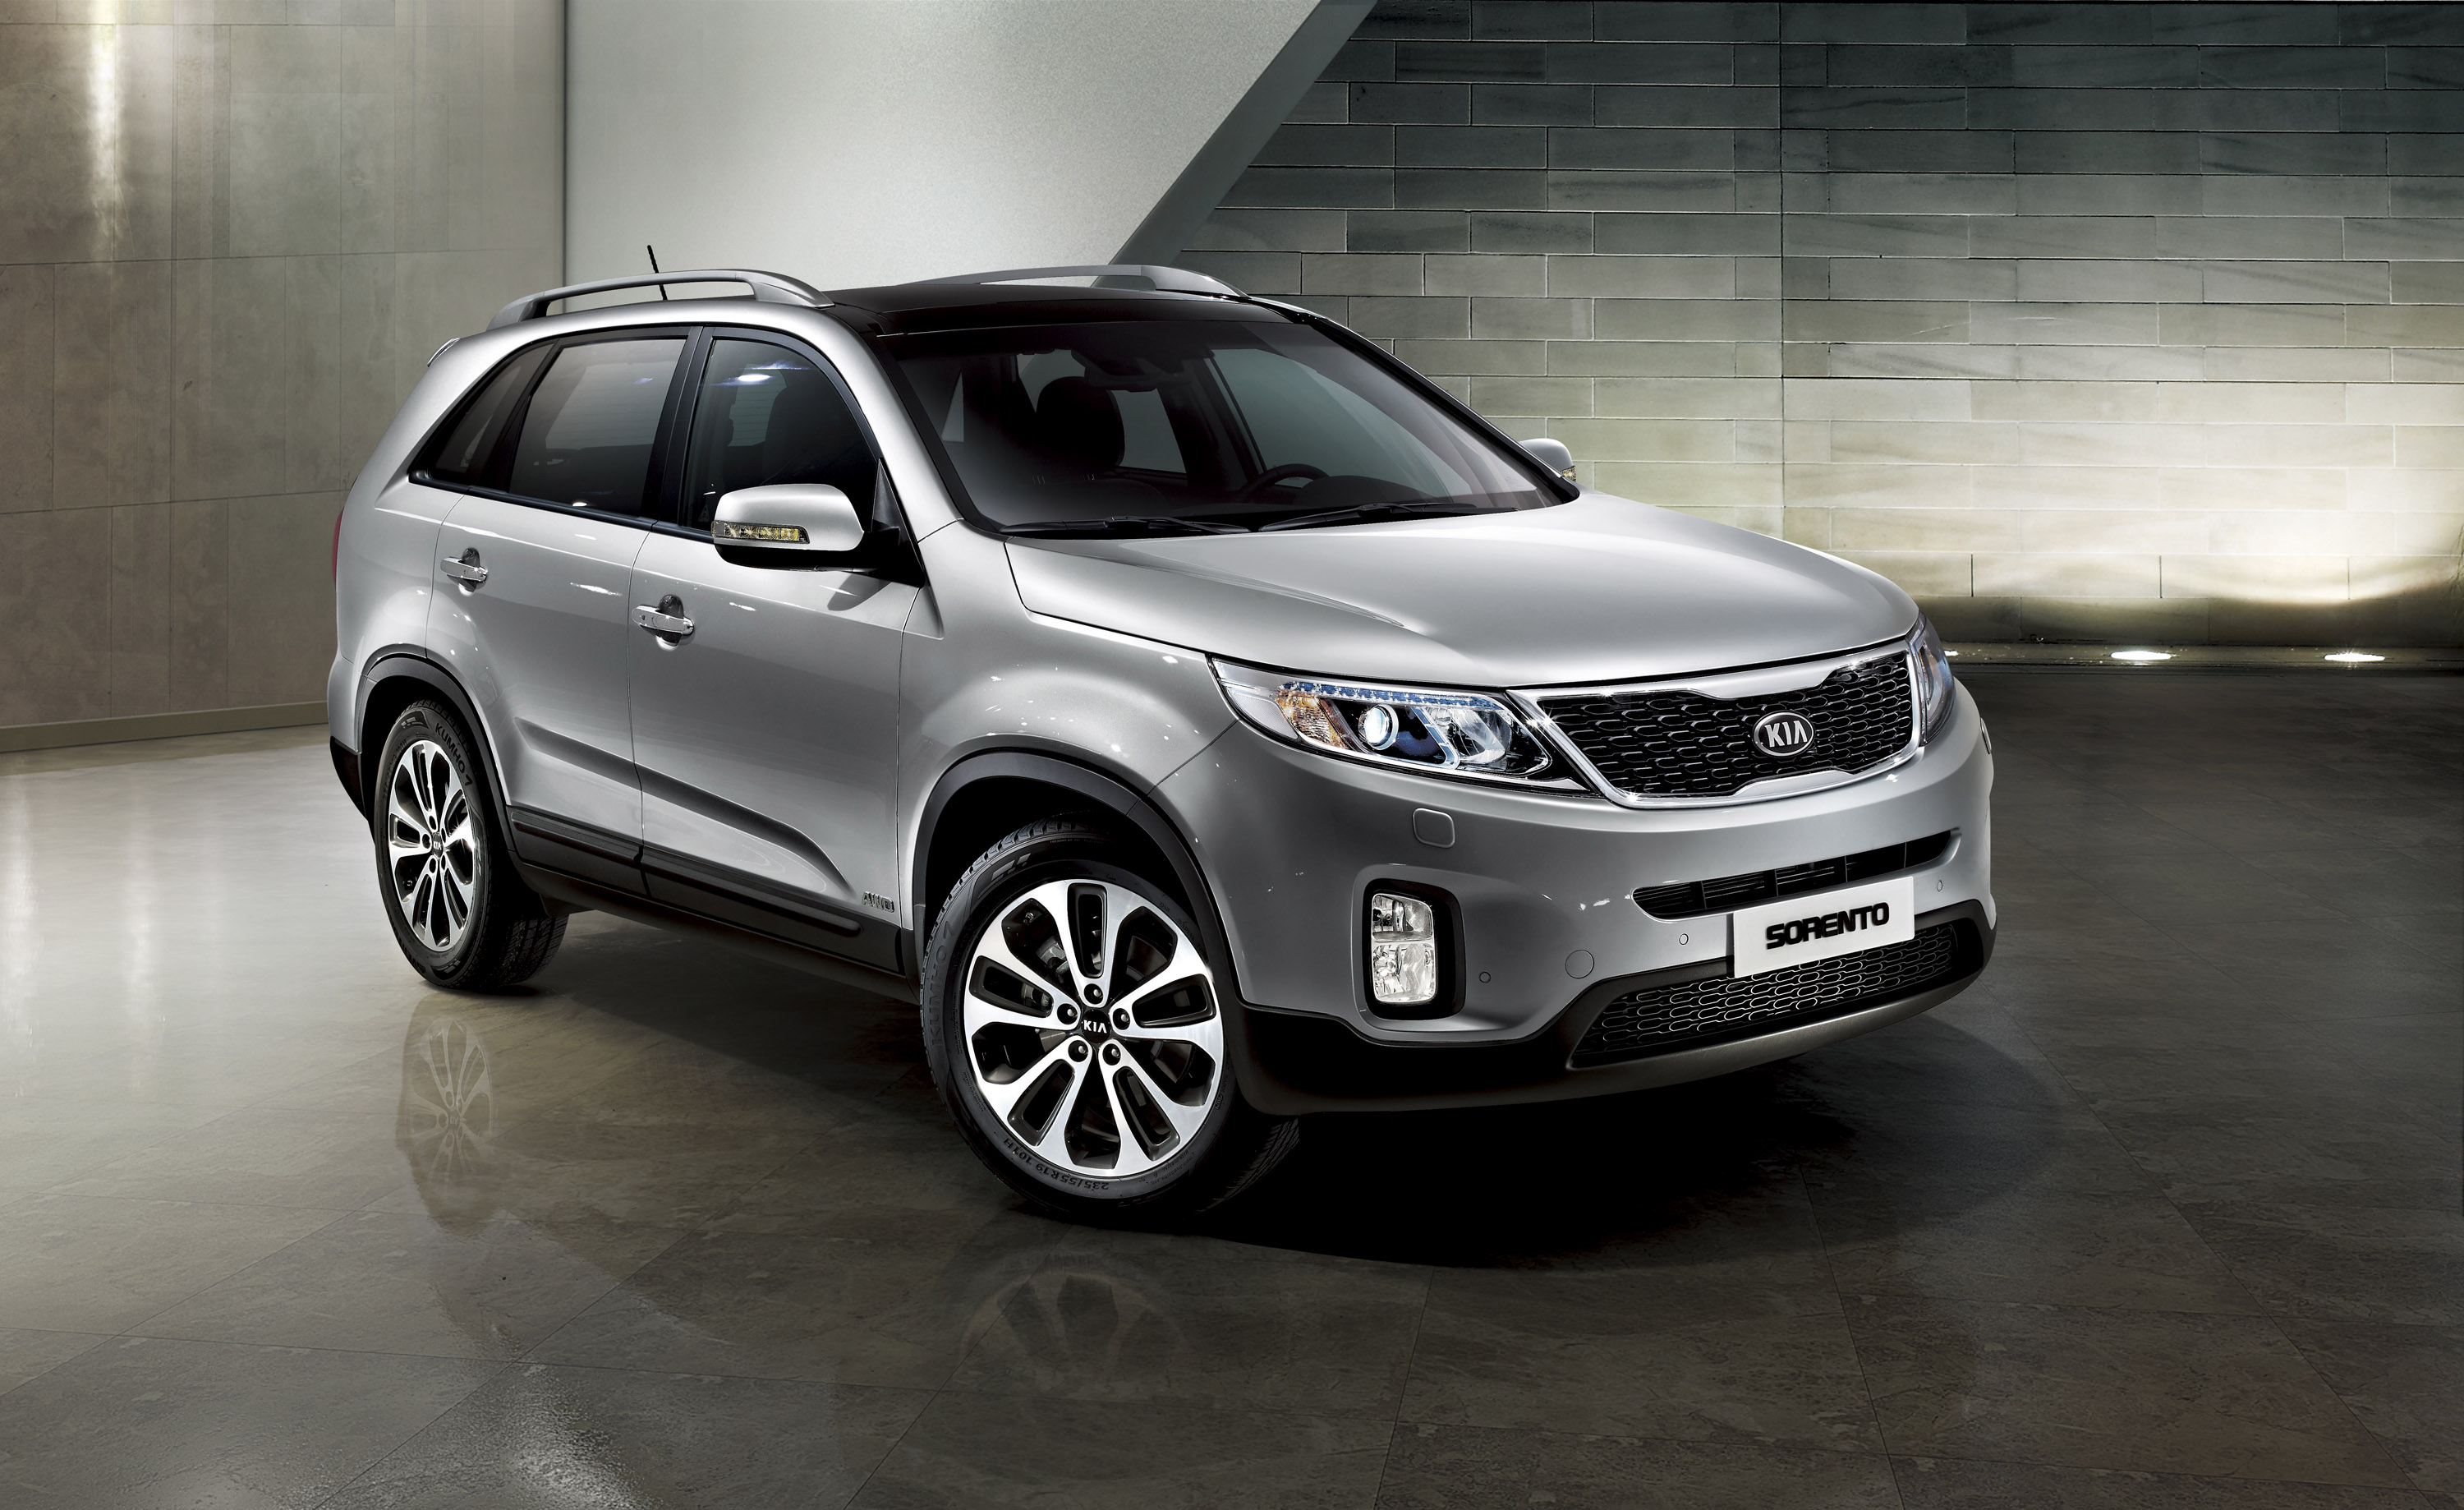 kia articles informations com bestcarmag lx sorento photos makes